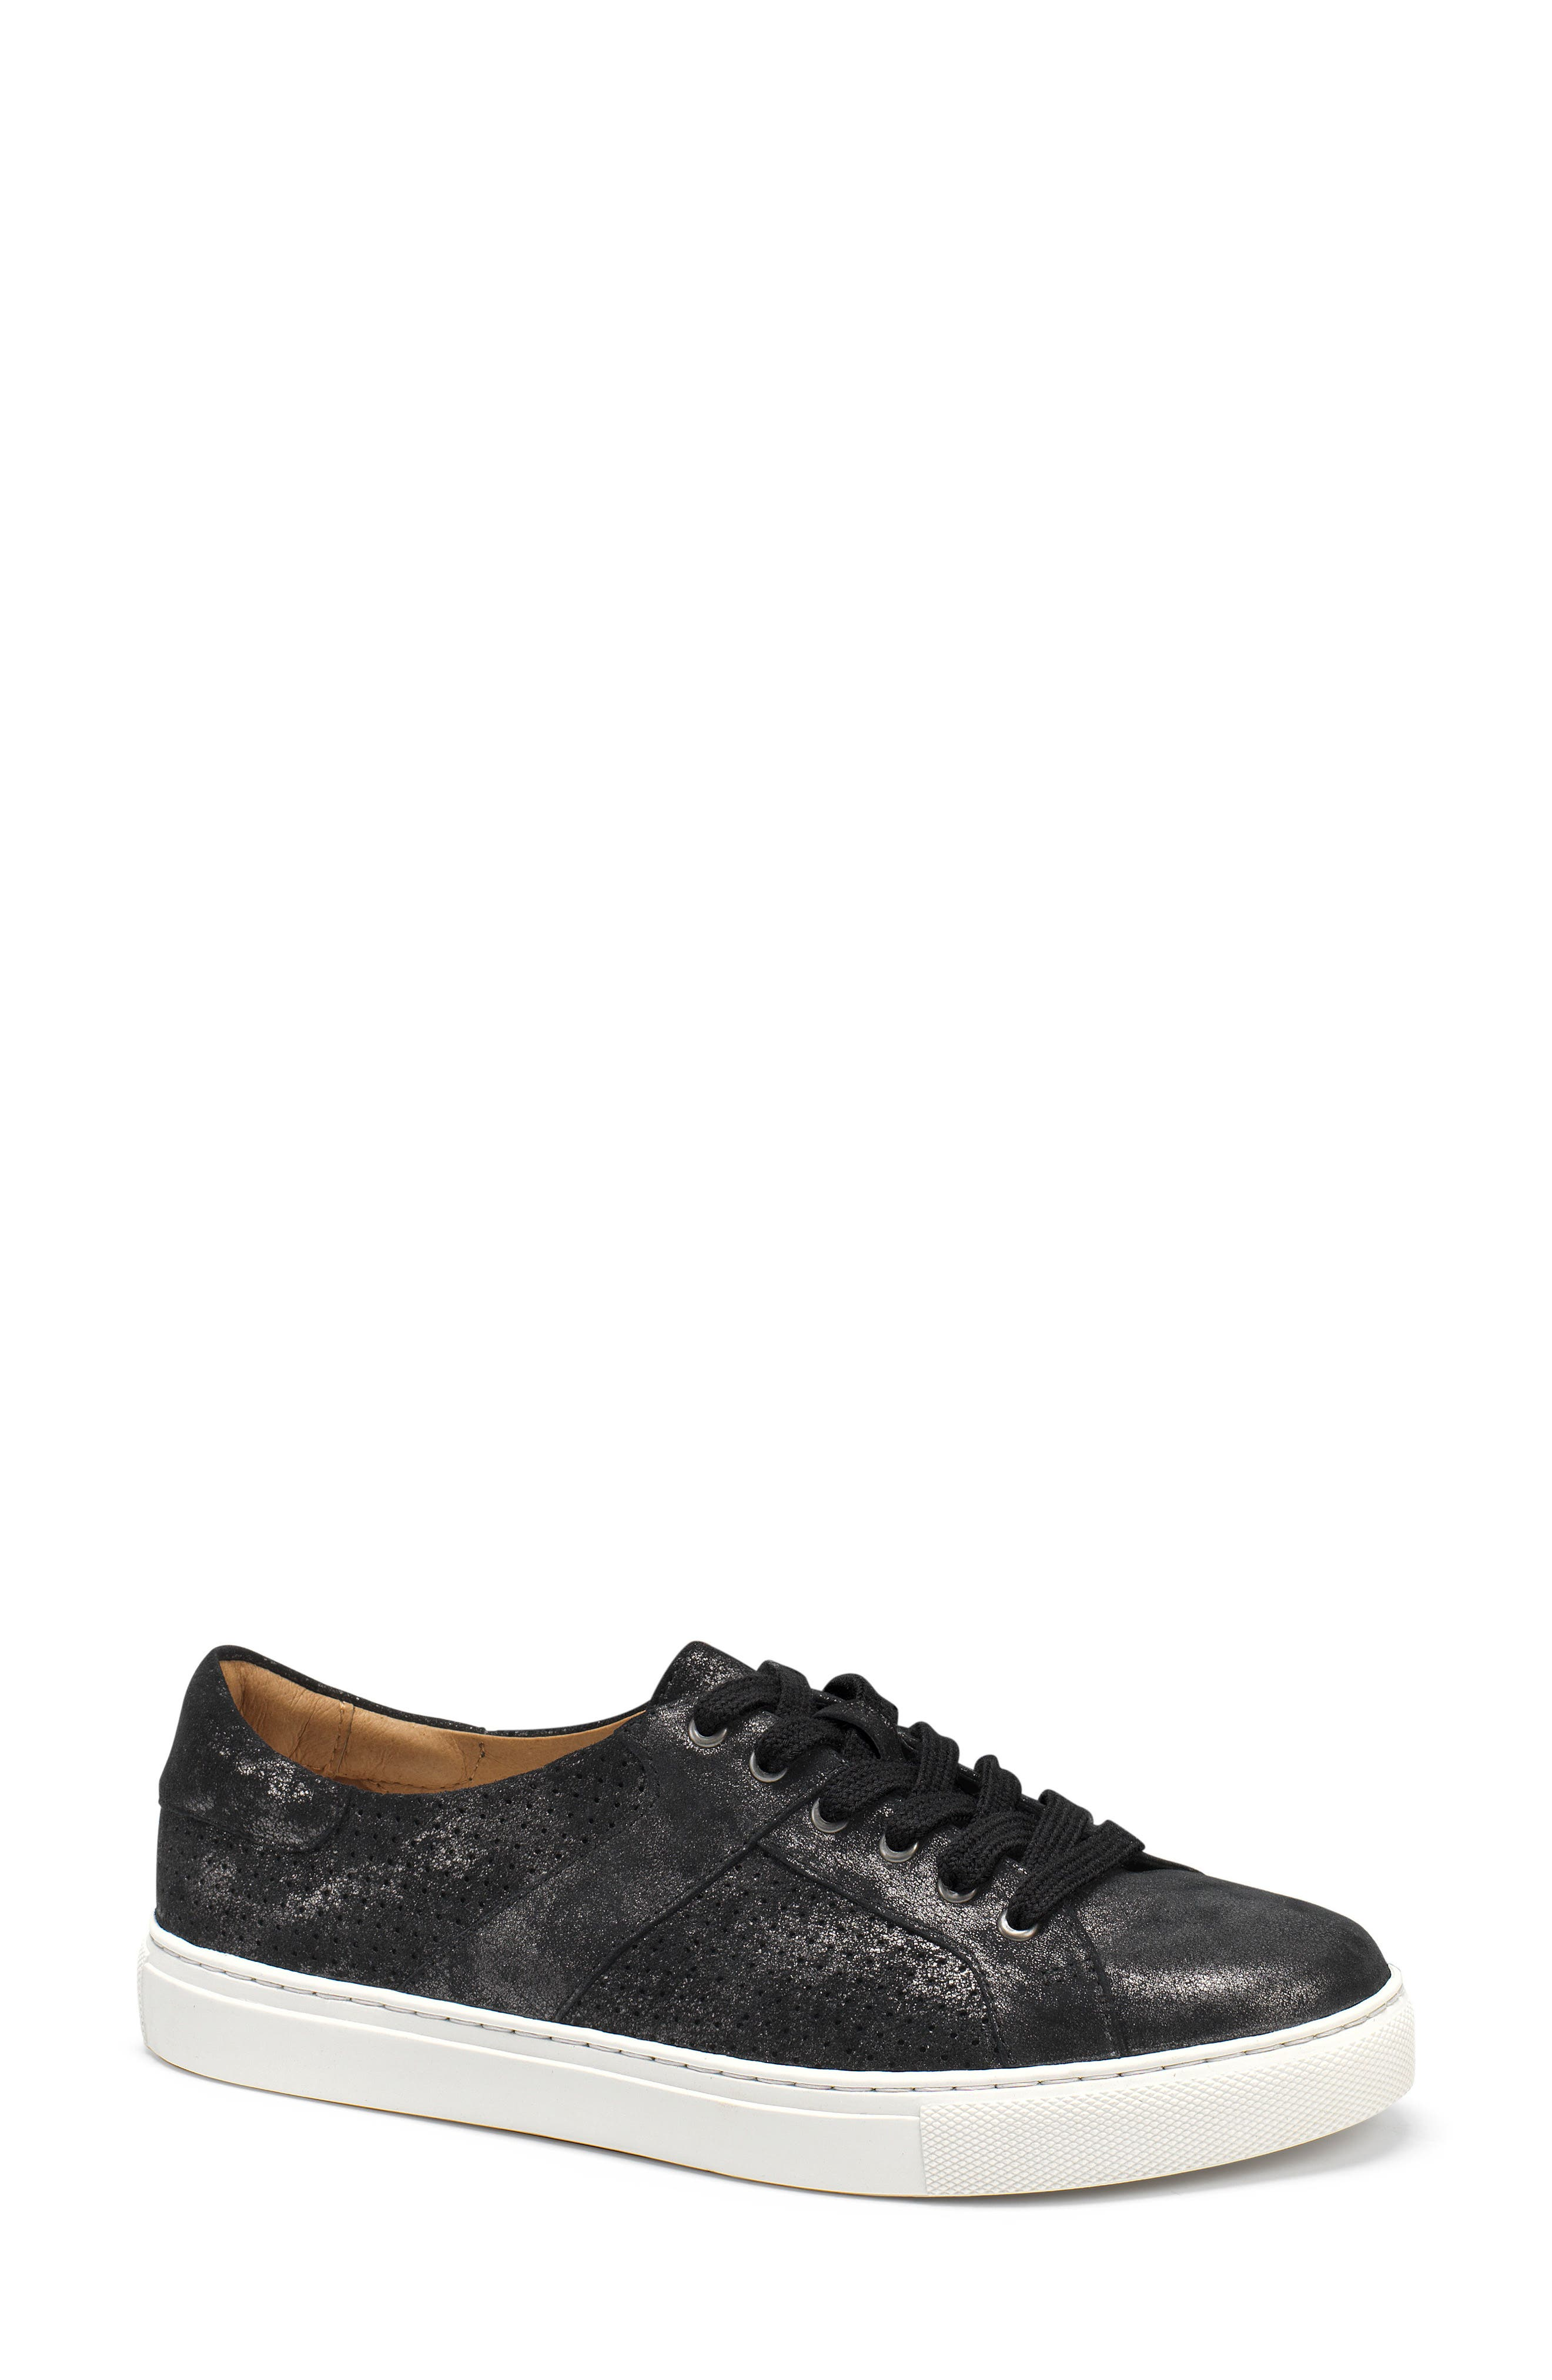 Lindsey Sneaker,                         Main,                         color, BLACK METALLIC LEATHER